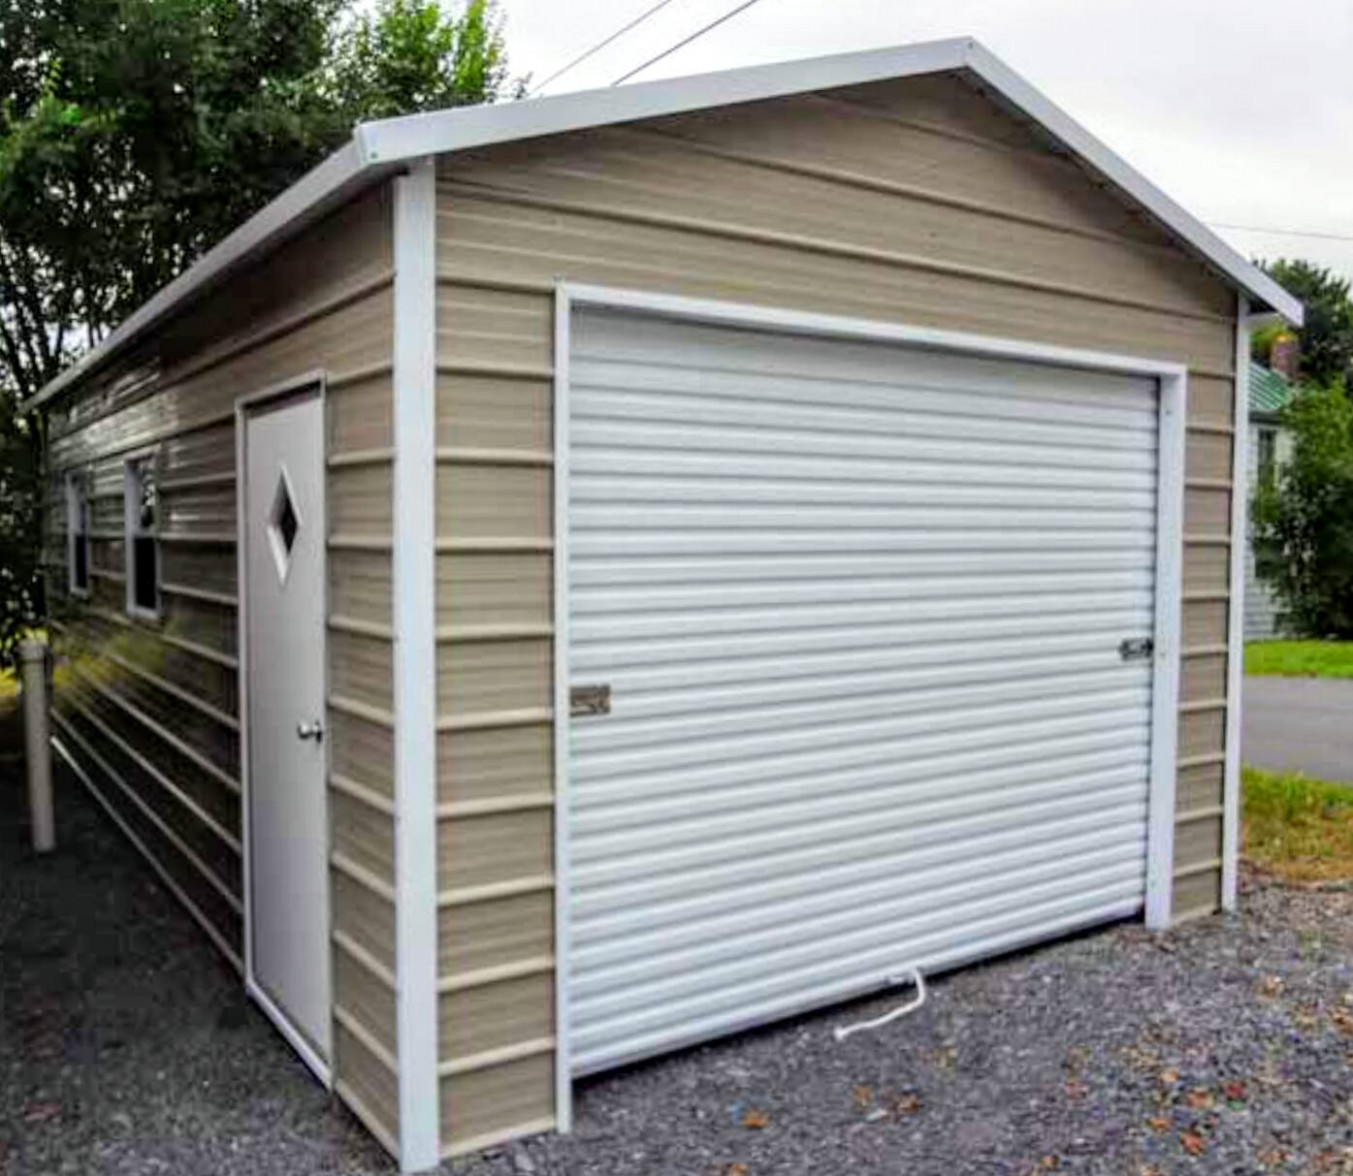 Victory Buildings – Metal Buildings, Carports, Gazebos Wooden Carport With Storage Shed